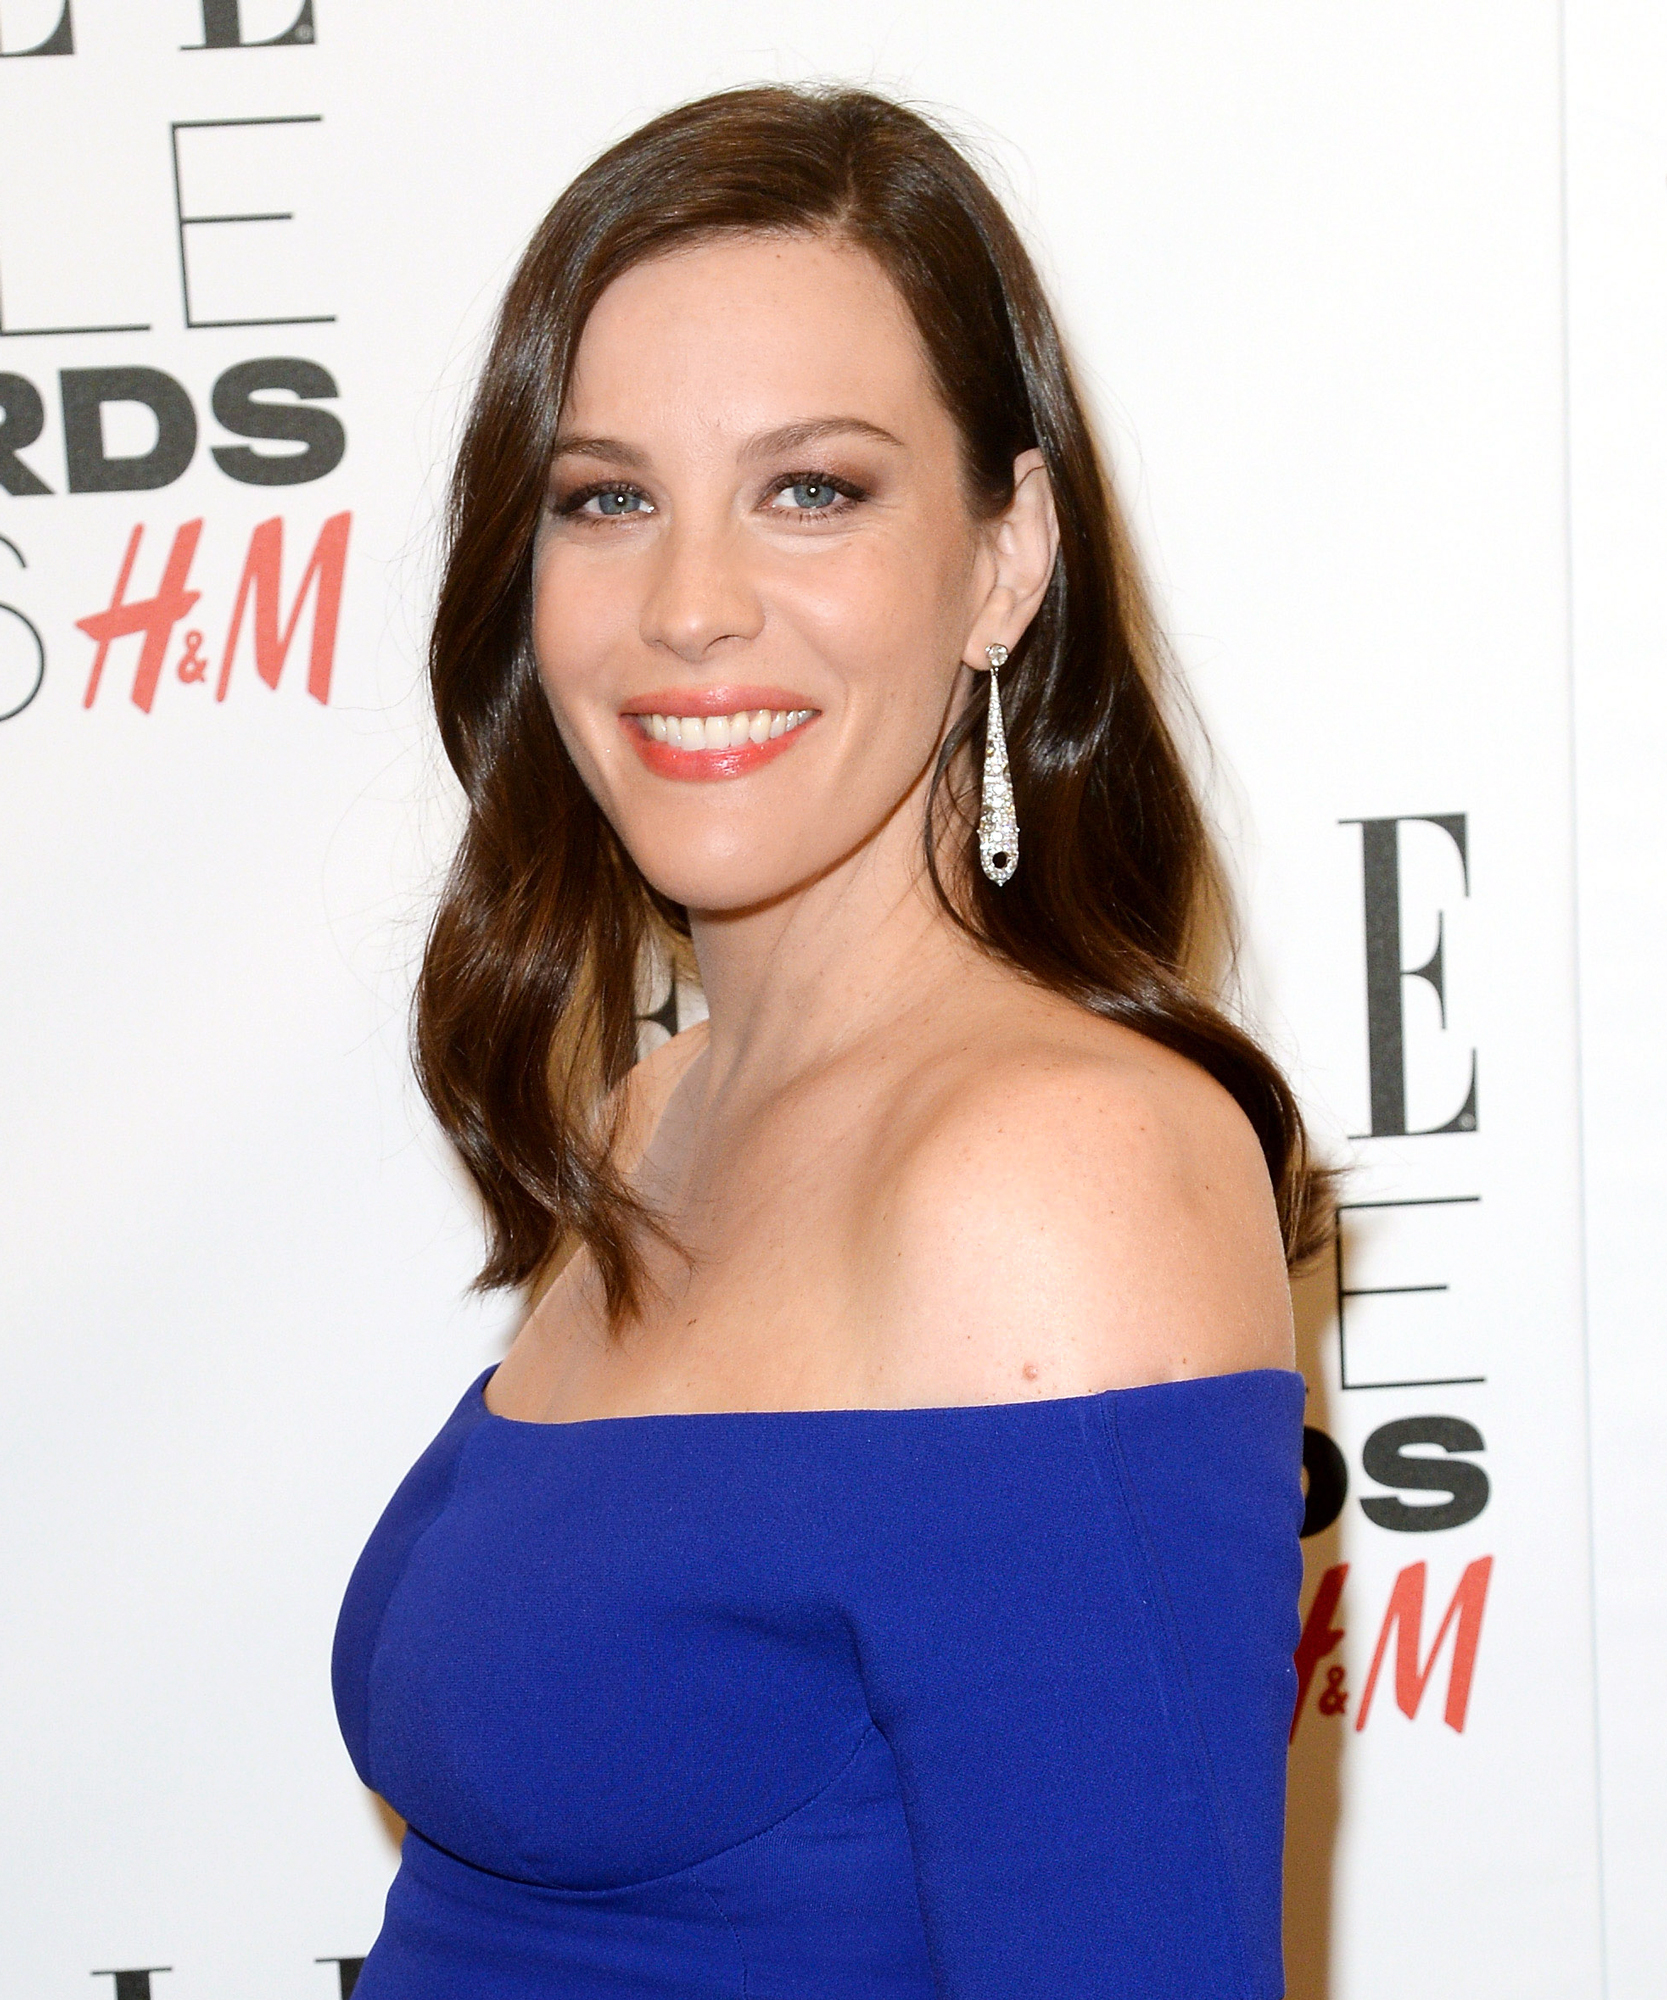 Liv Tyler attends The Elle Style Awards 2016 on February 23, 2016 in London, England.